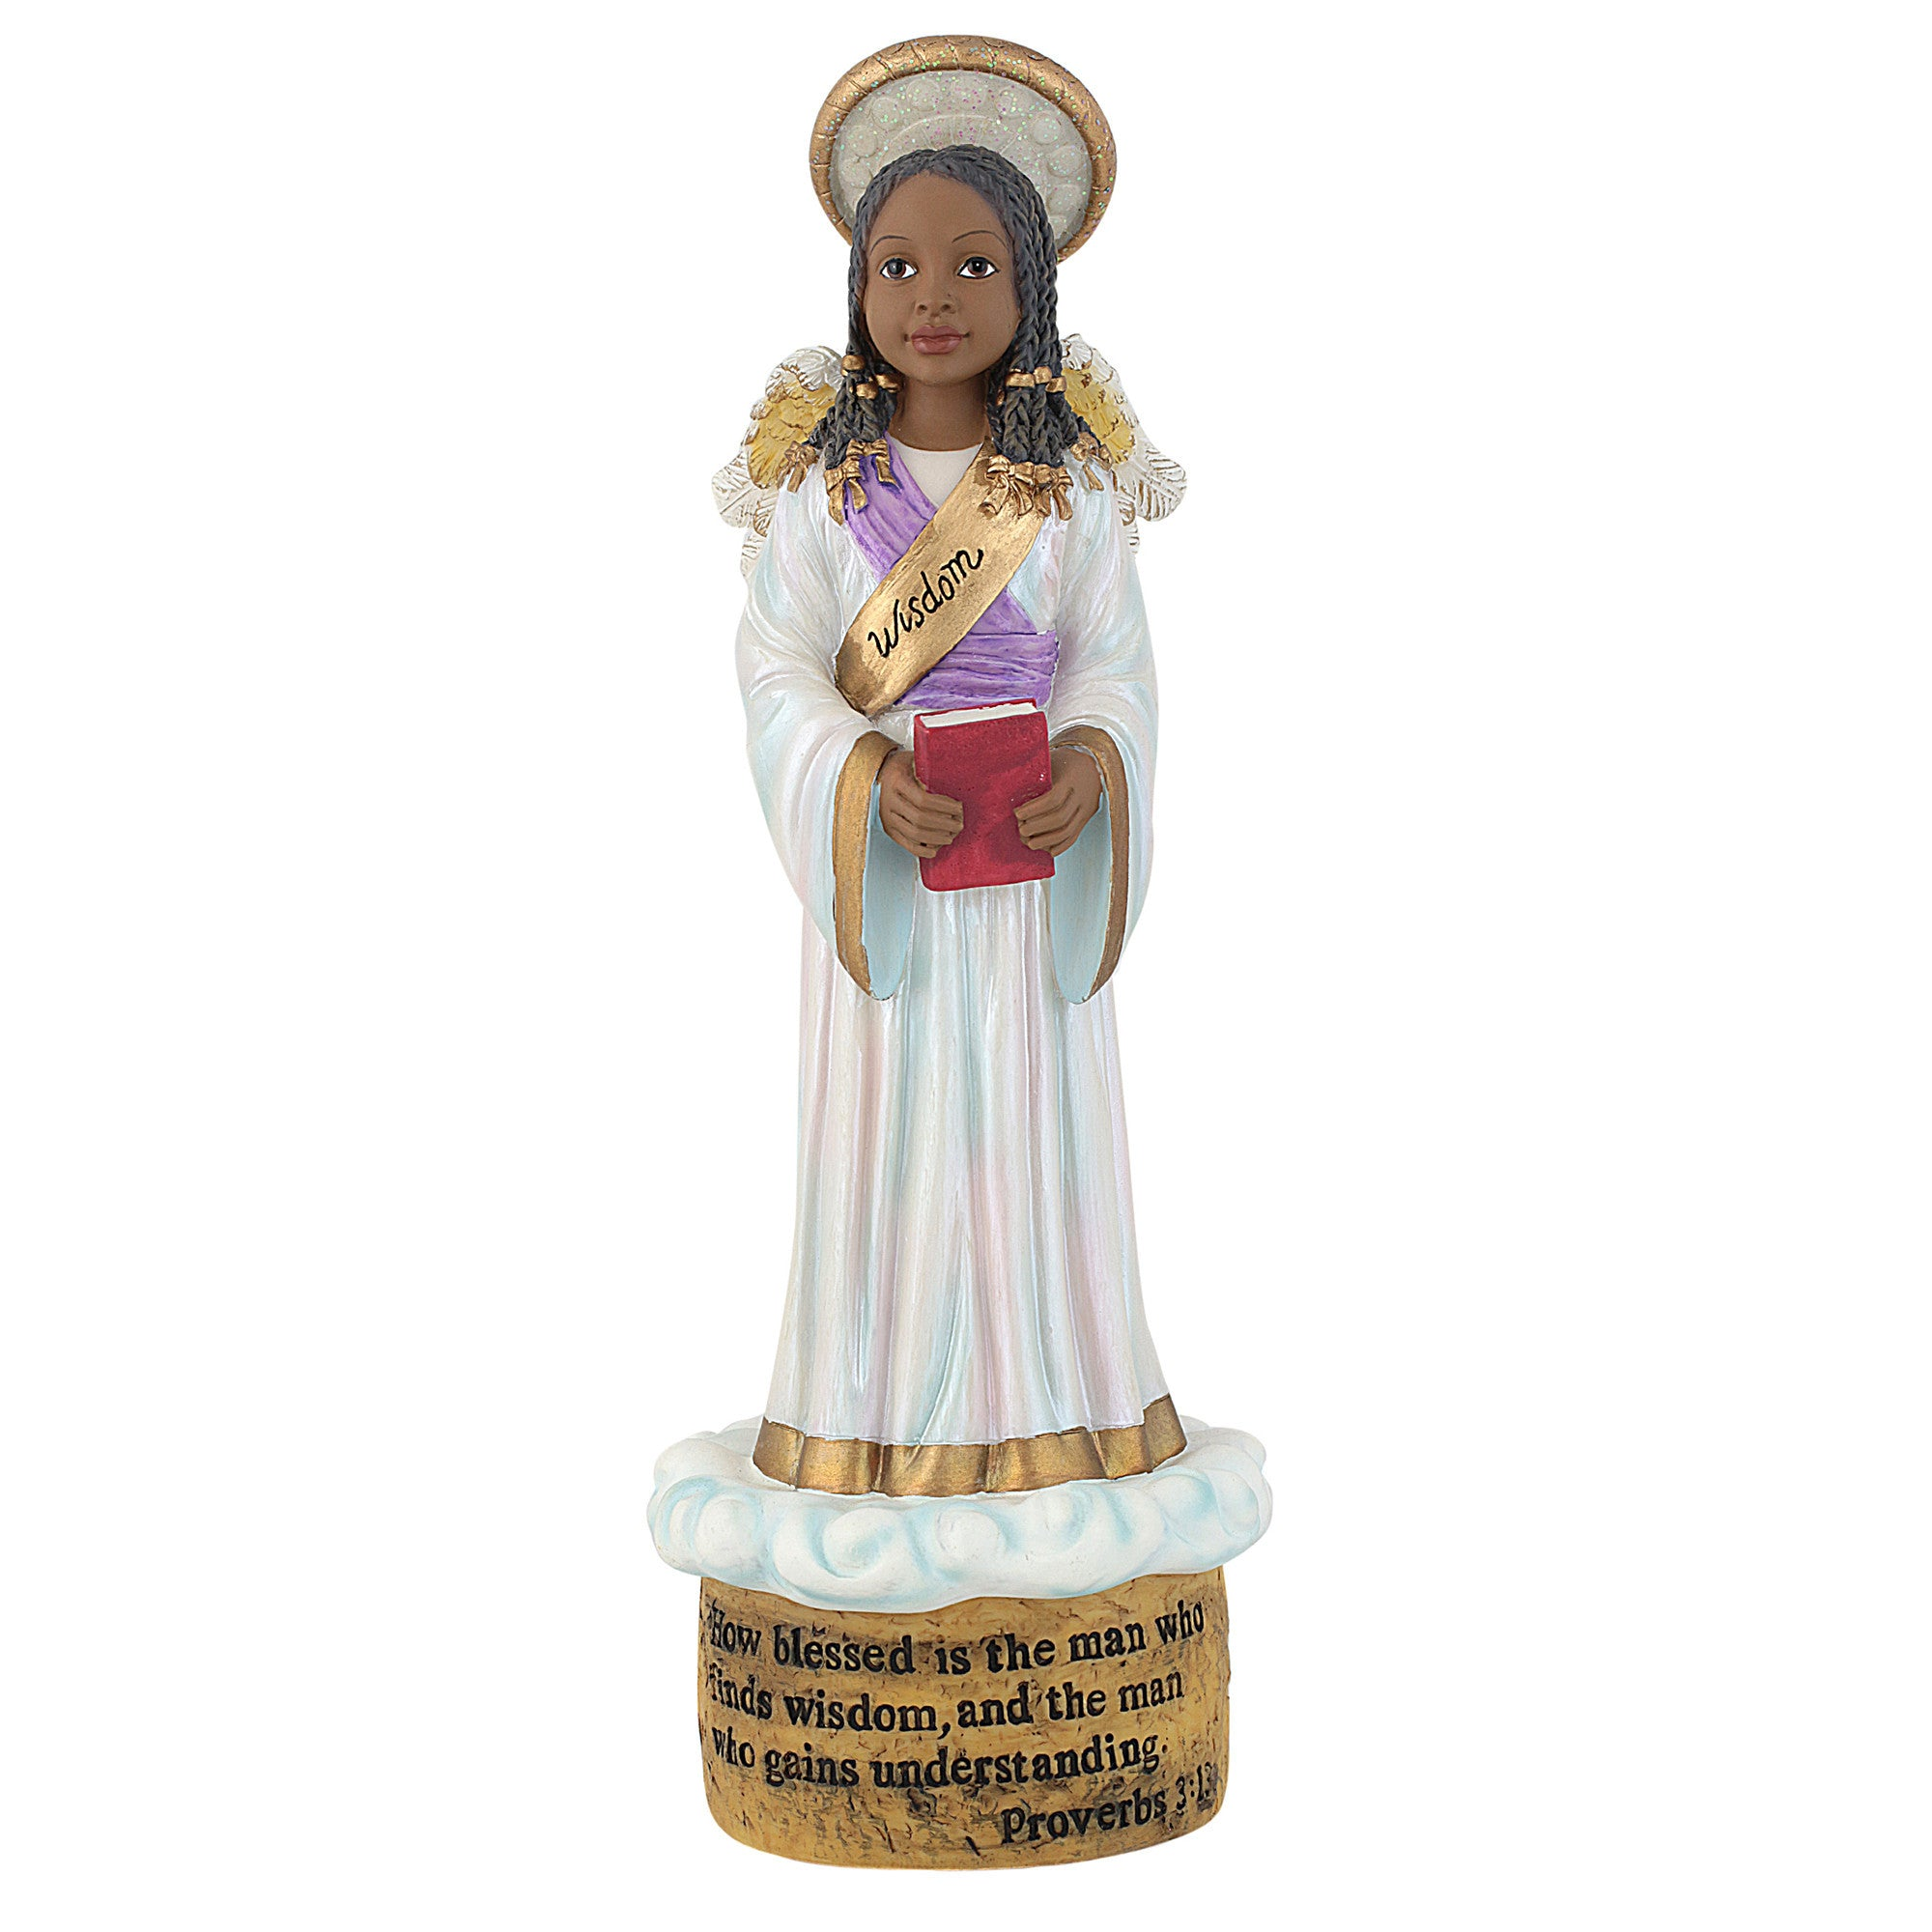 Wisdom Angel: Blessings Unto You Figurine Collection